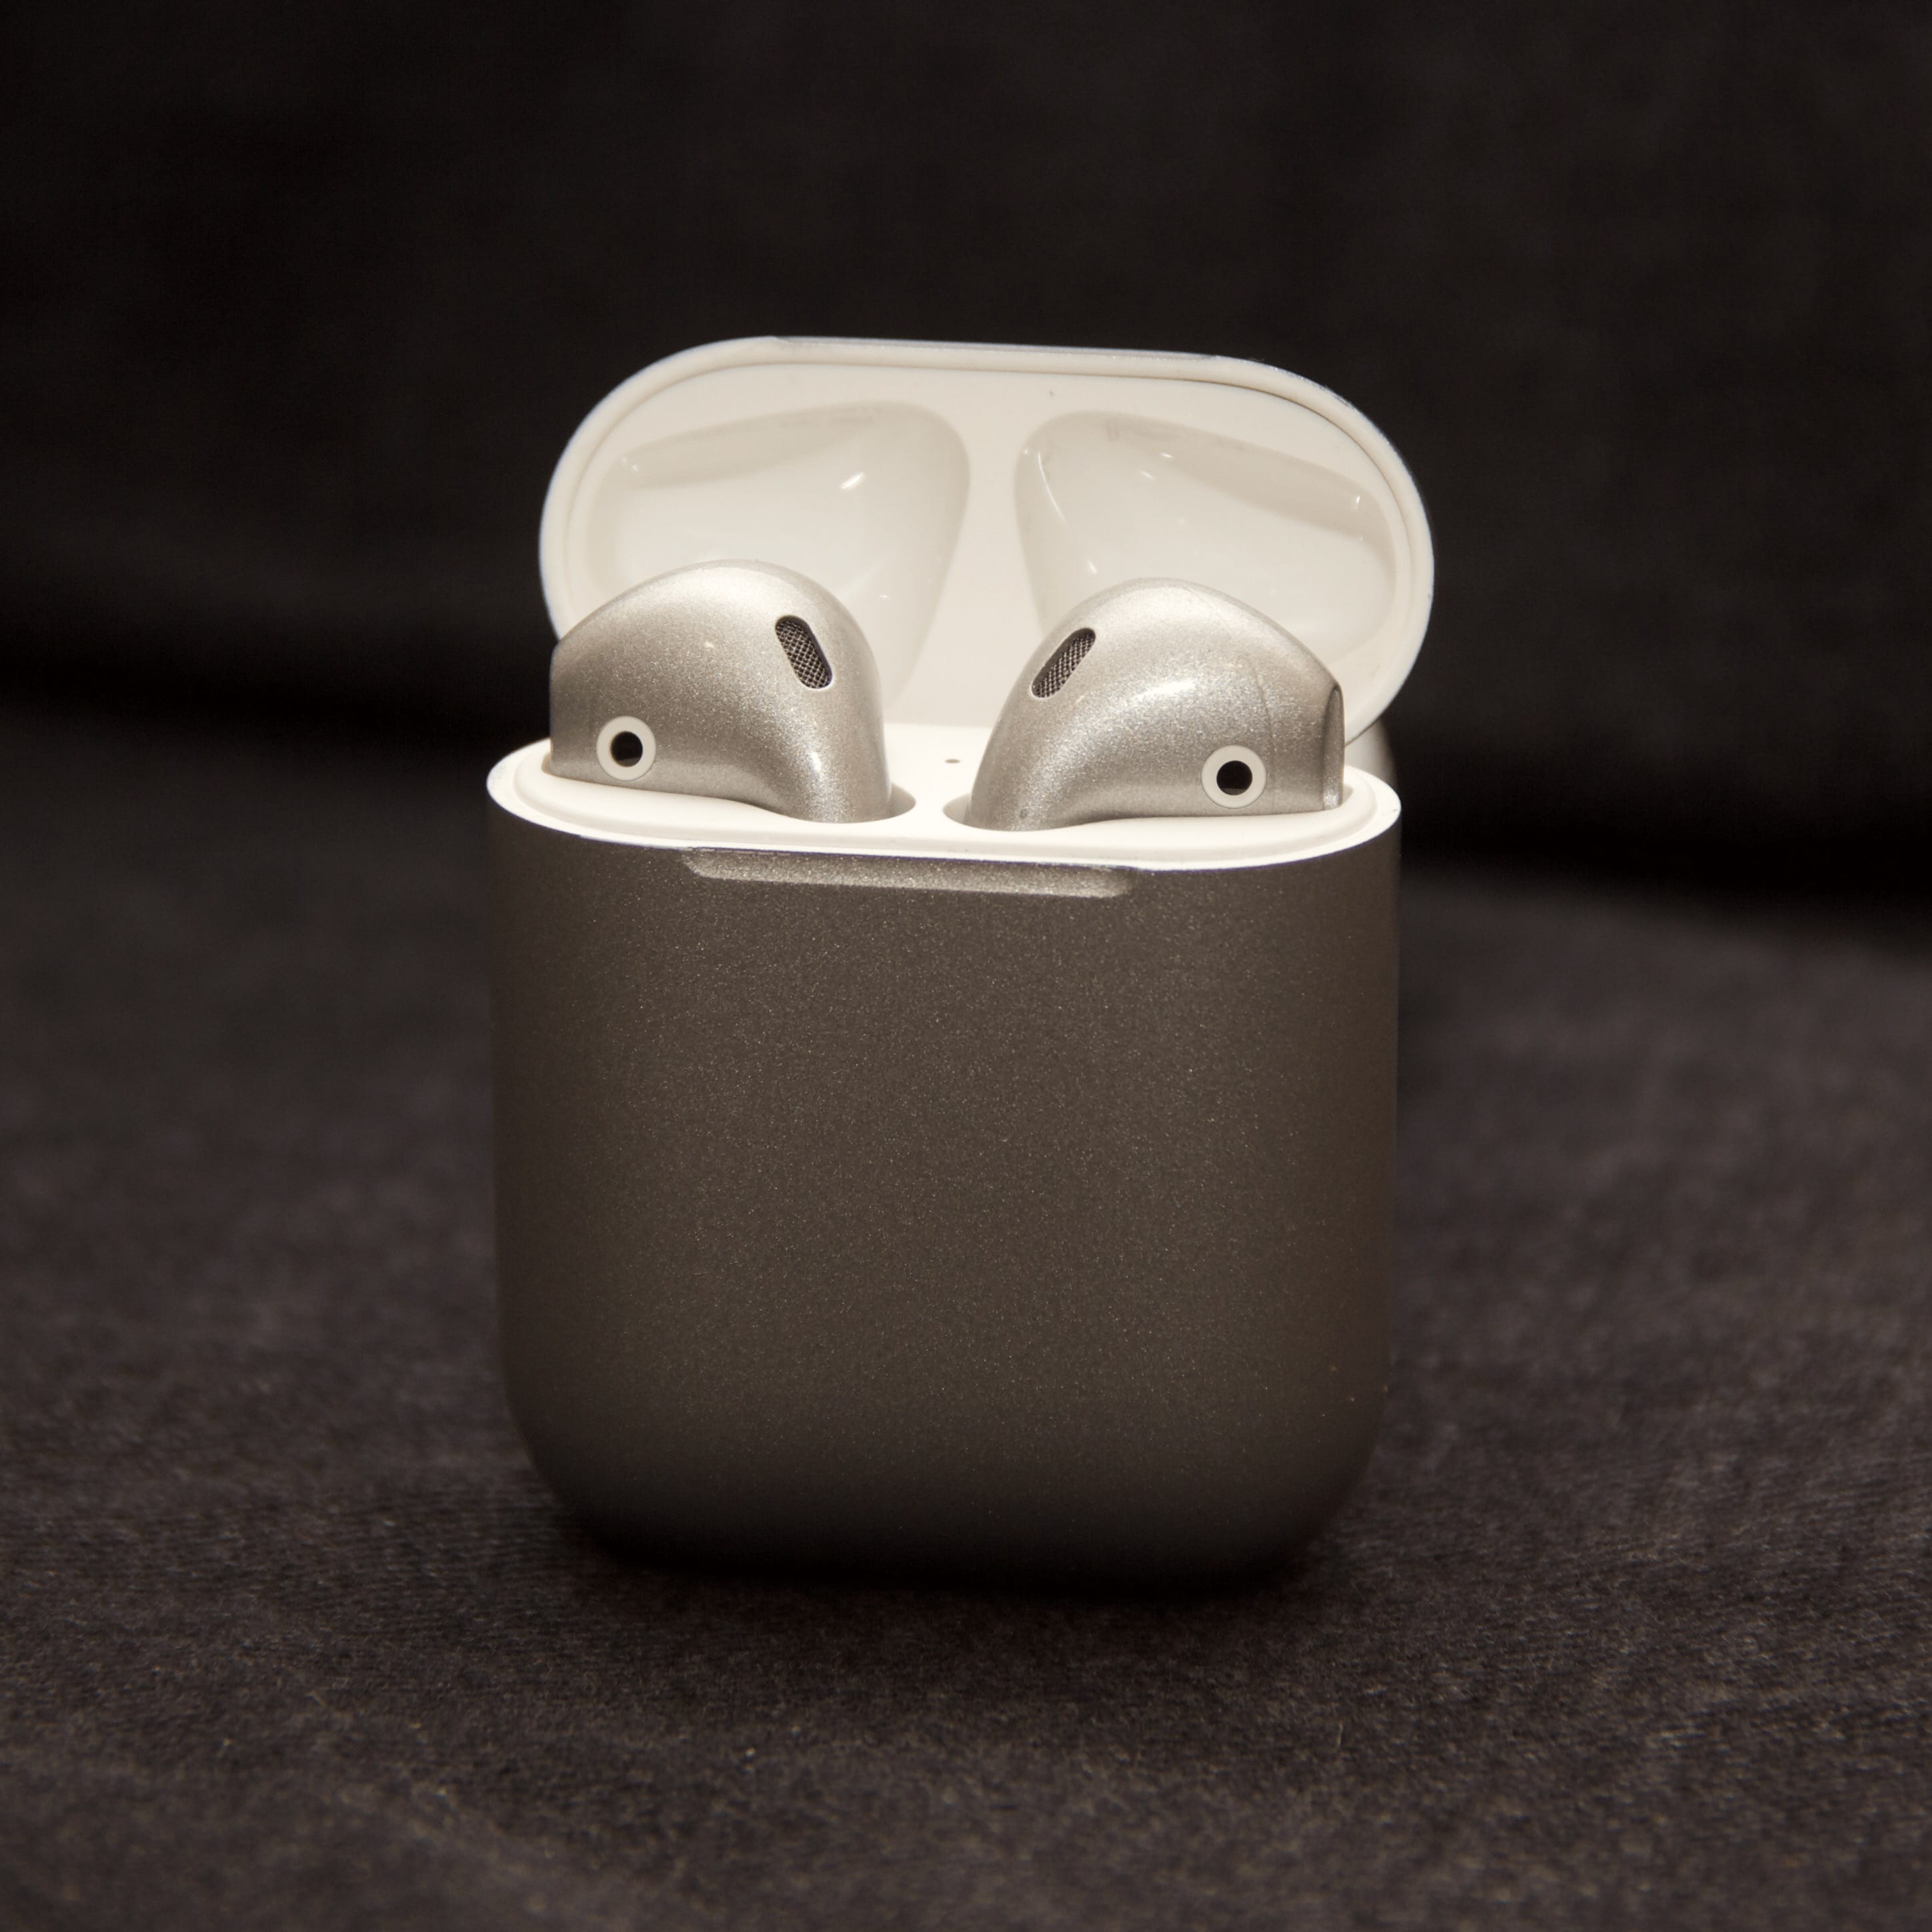 BlackPods Aero Space Gray Apple AirPods